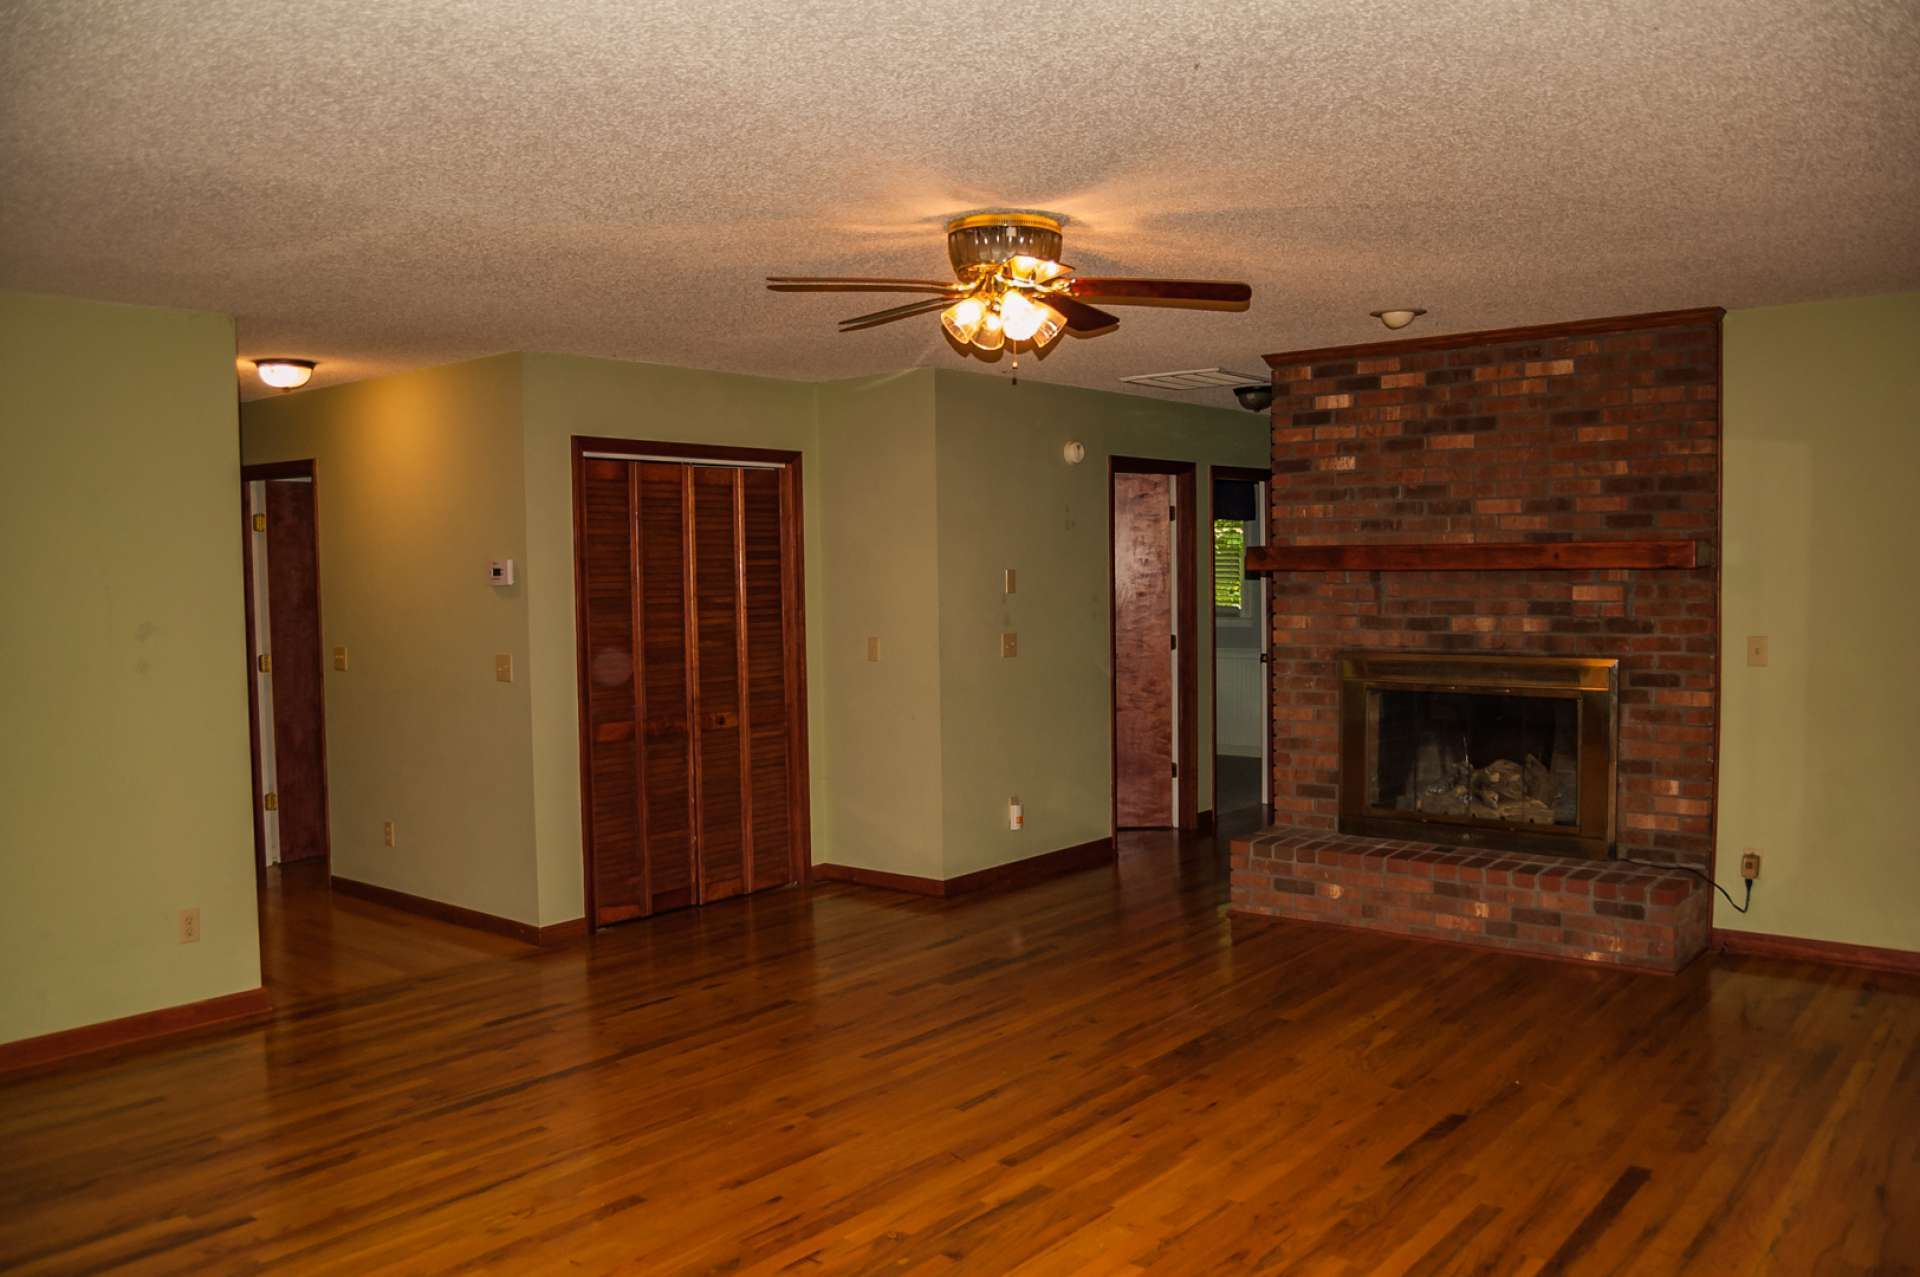 One level living offers an open floor plan with a spacious kitchen, dining and living area with hardwood floors.  The living room features a brick fireplace for added warmth on cool evenings.